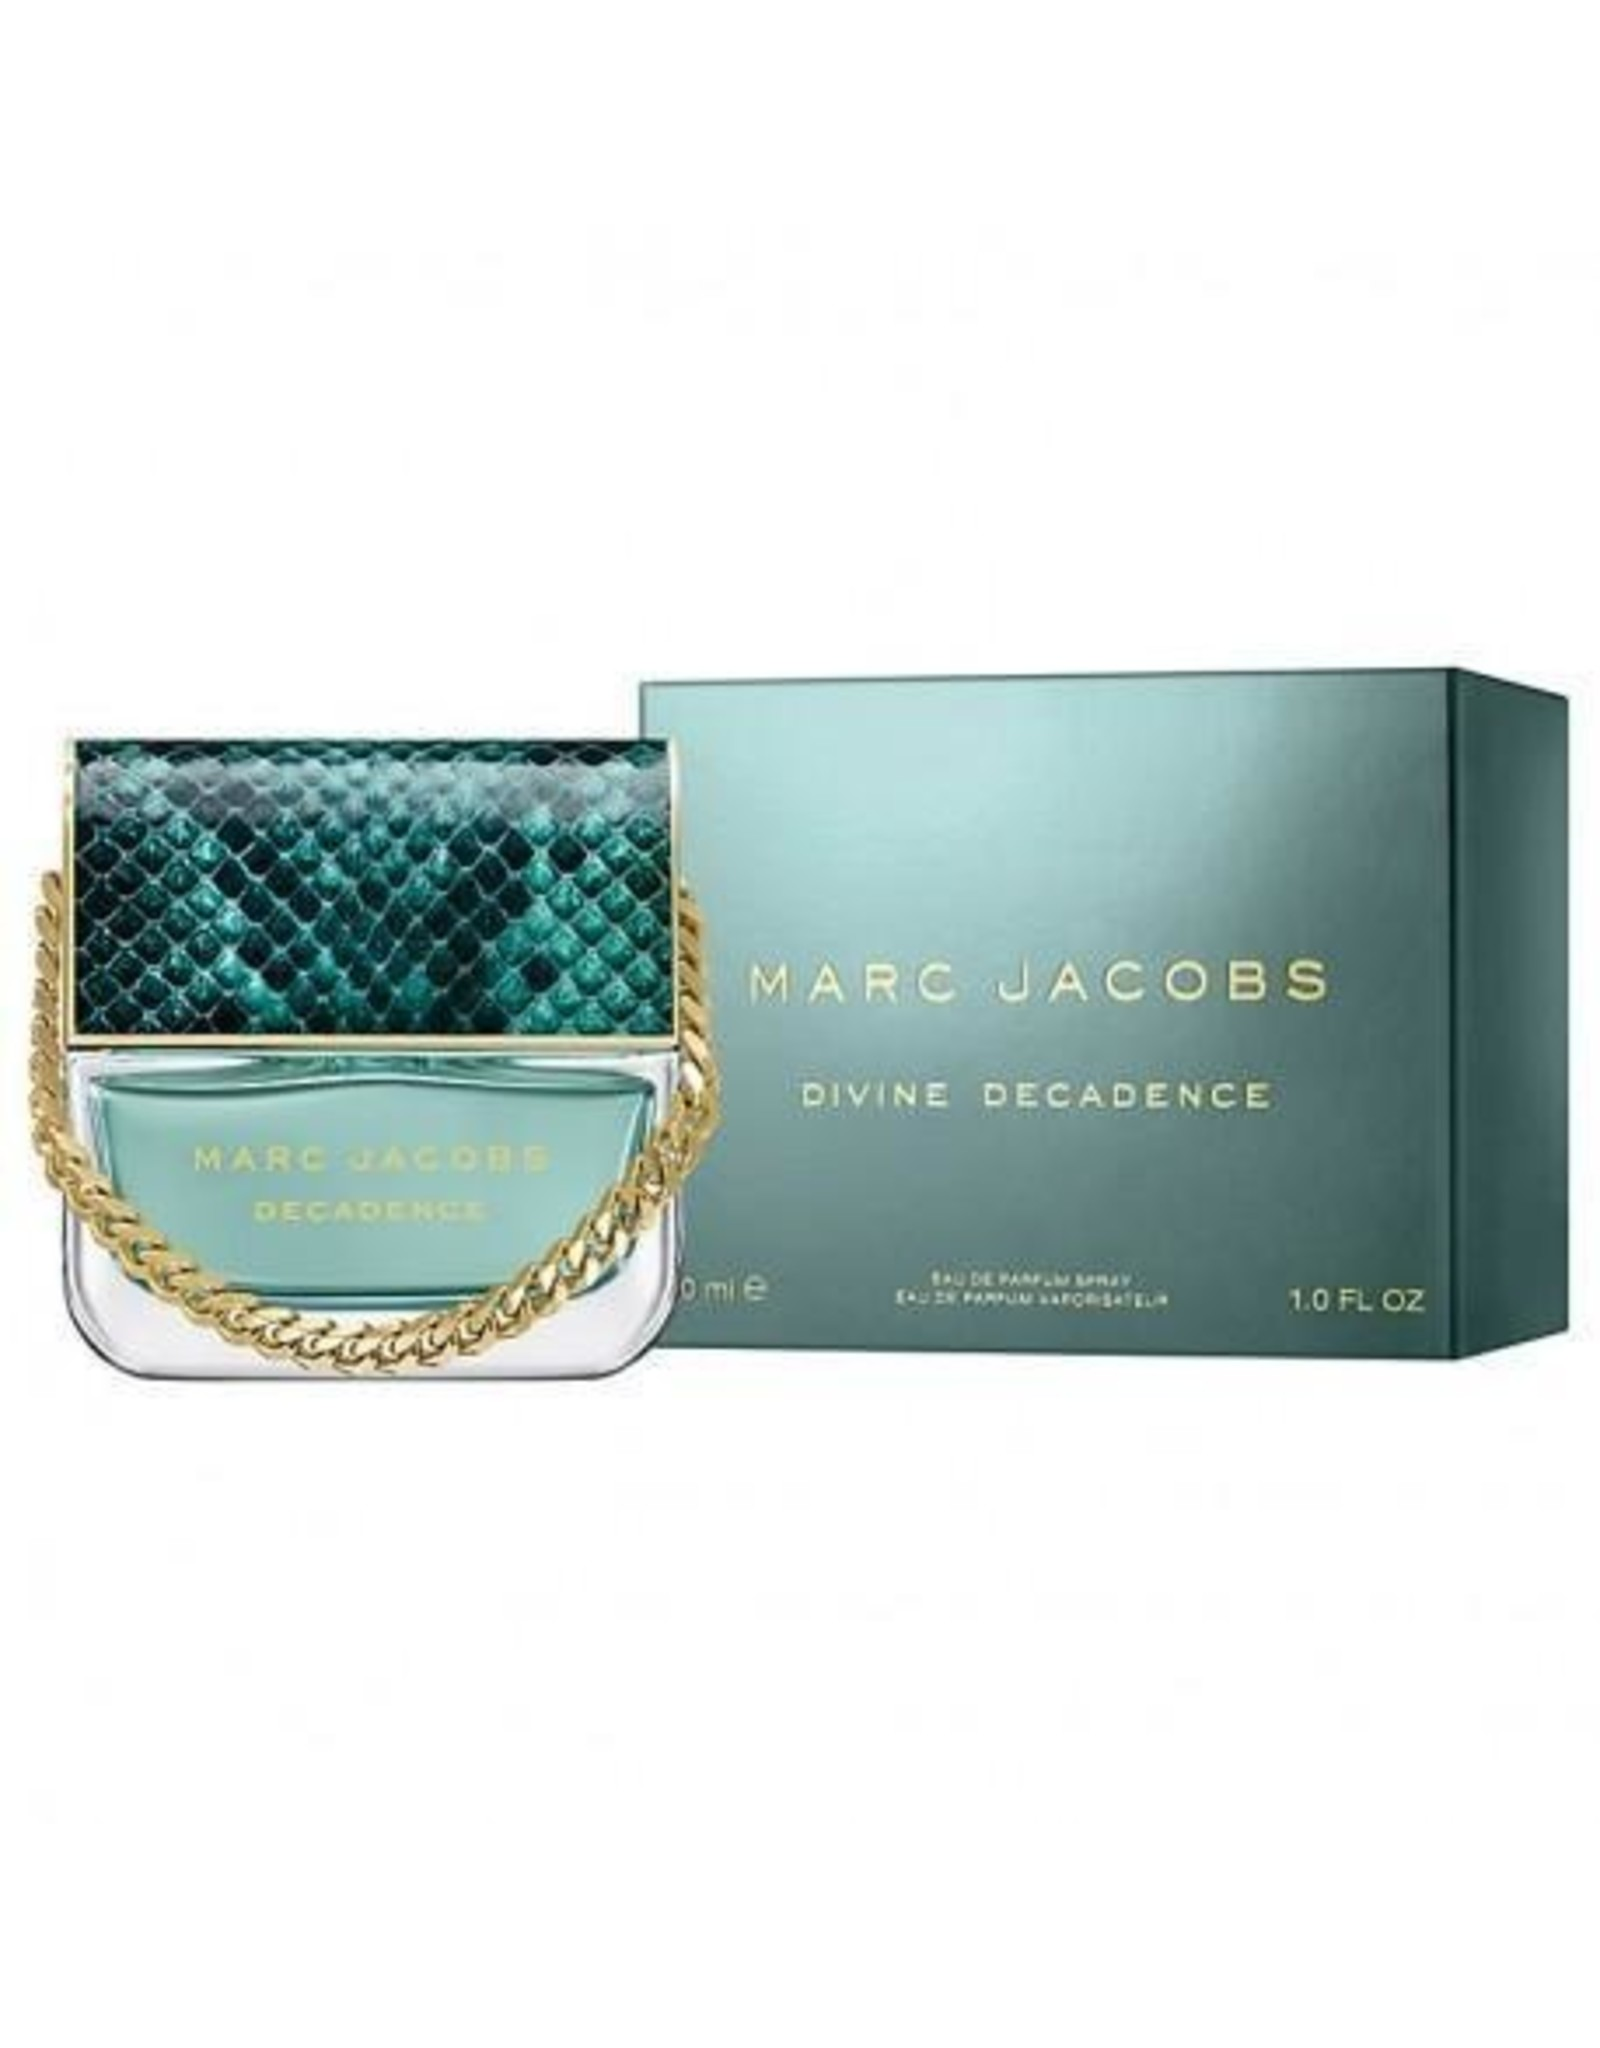 MARC JACOBS MARC JACOBS DIVINE DECADENCE